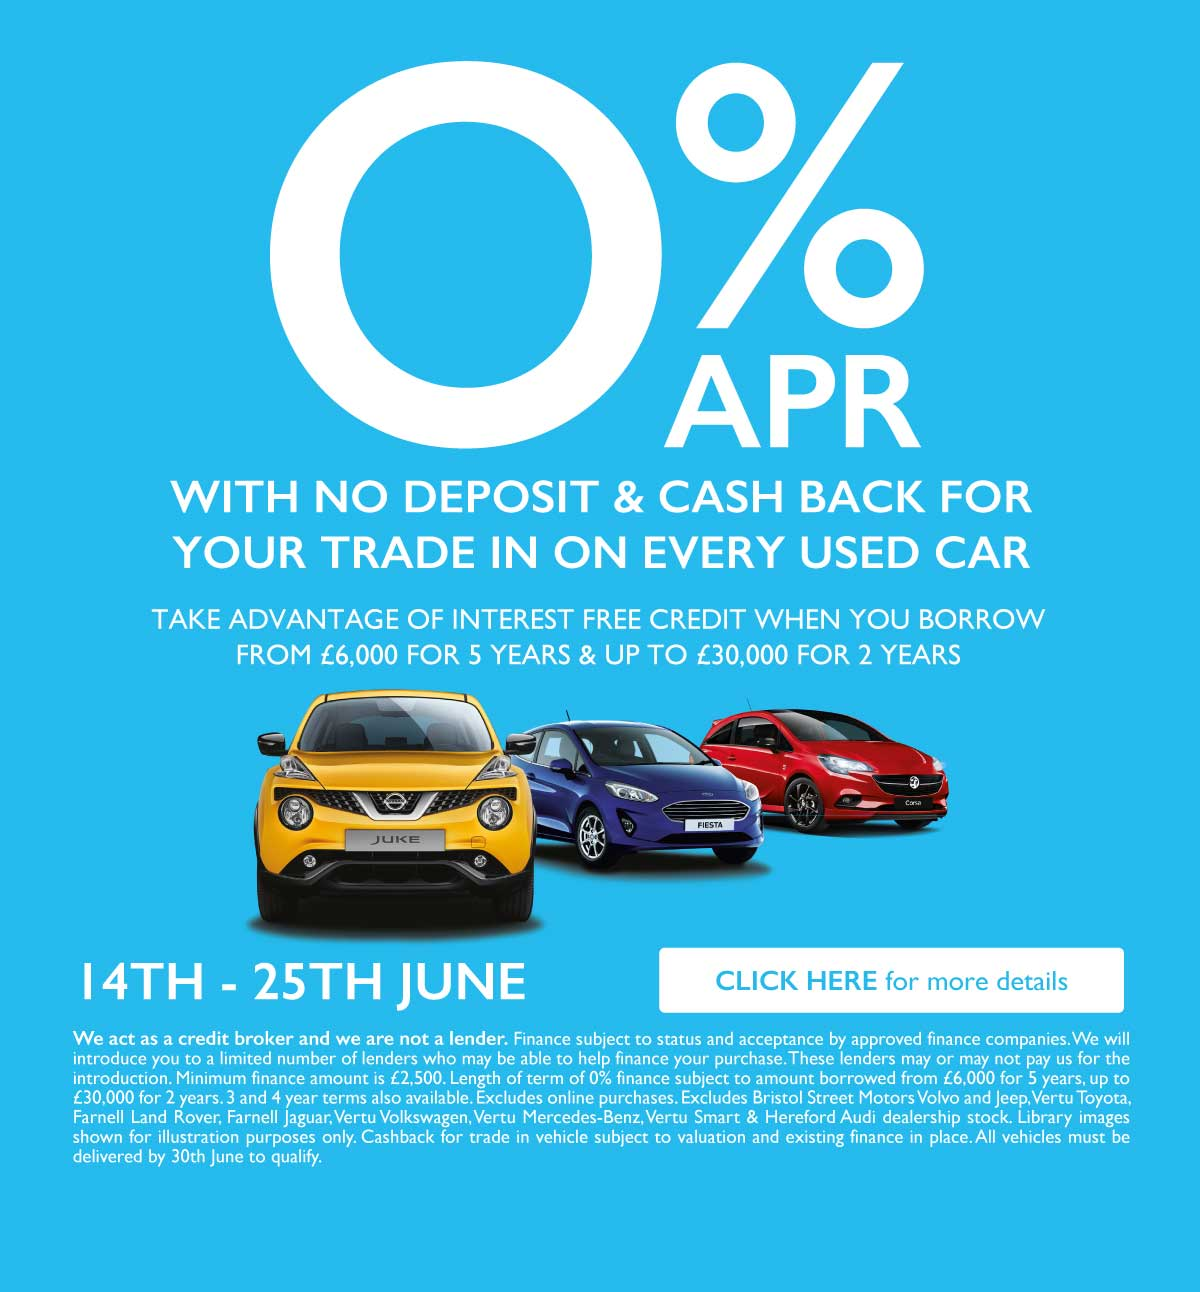 0% Used Car Event June 2019 - BSM Vauxhall